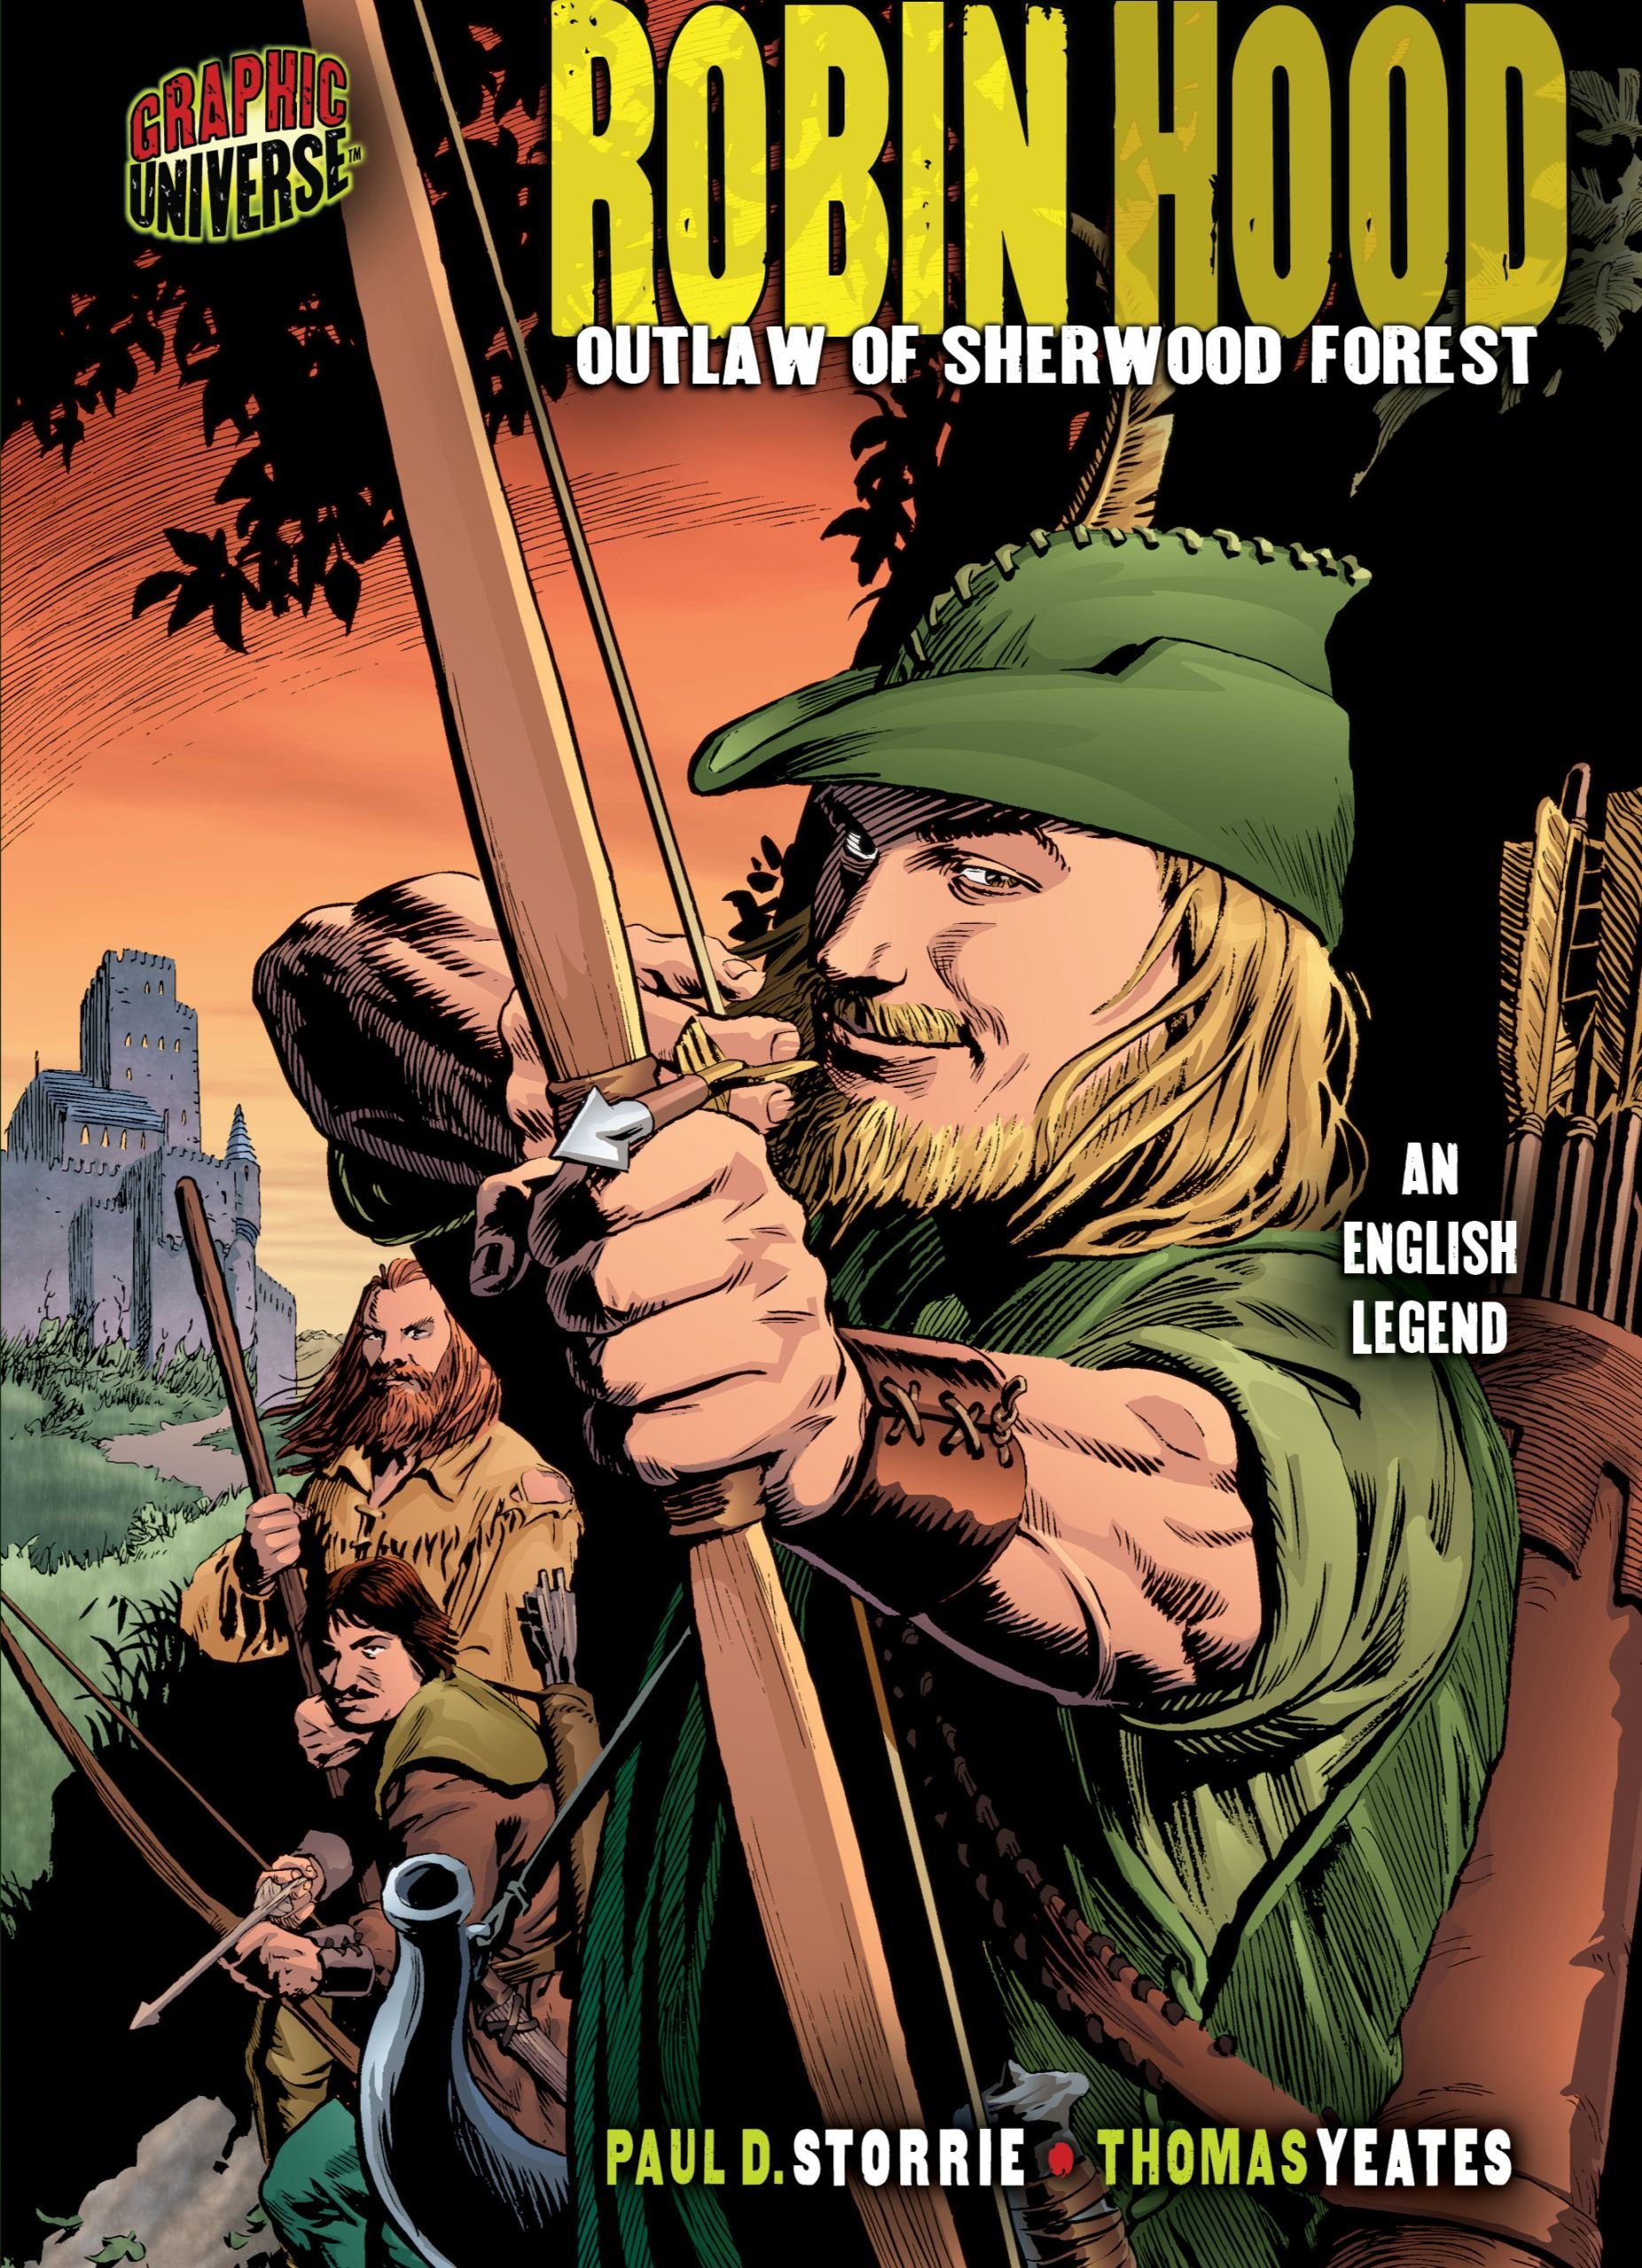 Read Online Robin Hood: Outlaw of Sherwood Forest [an English Legend] (Graphic Myths and Legends) ebook